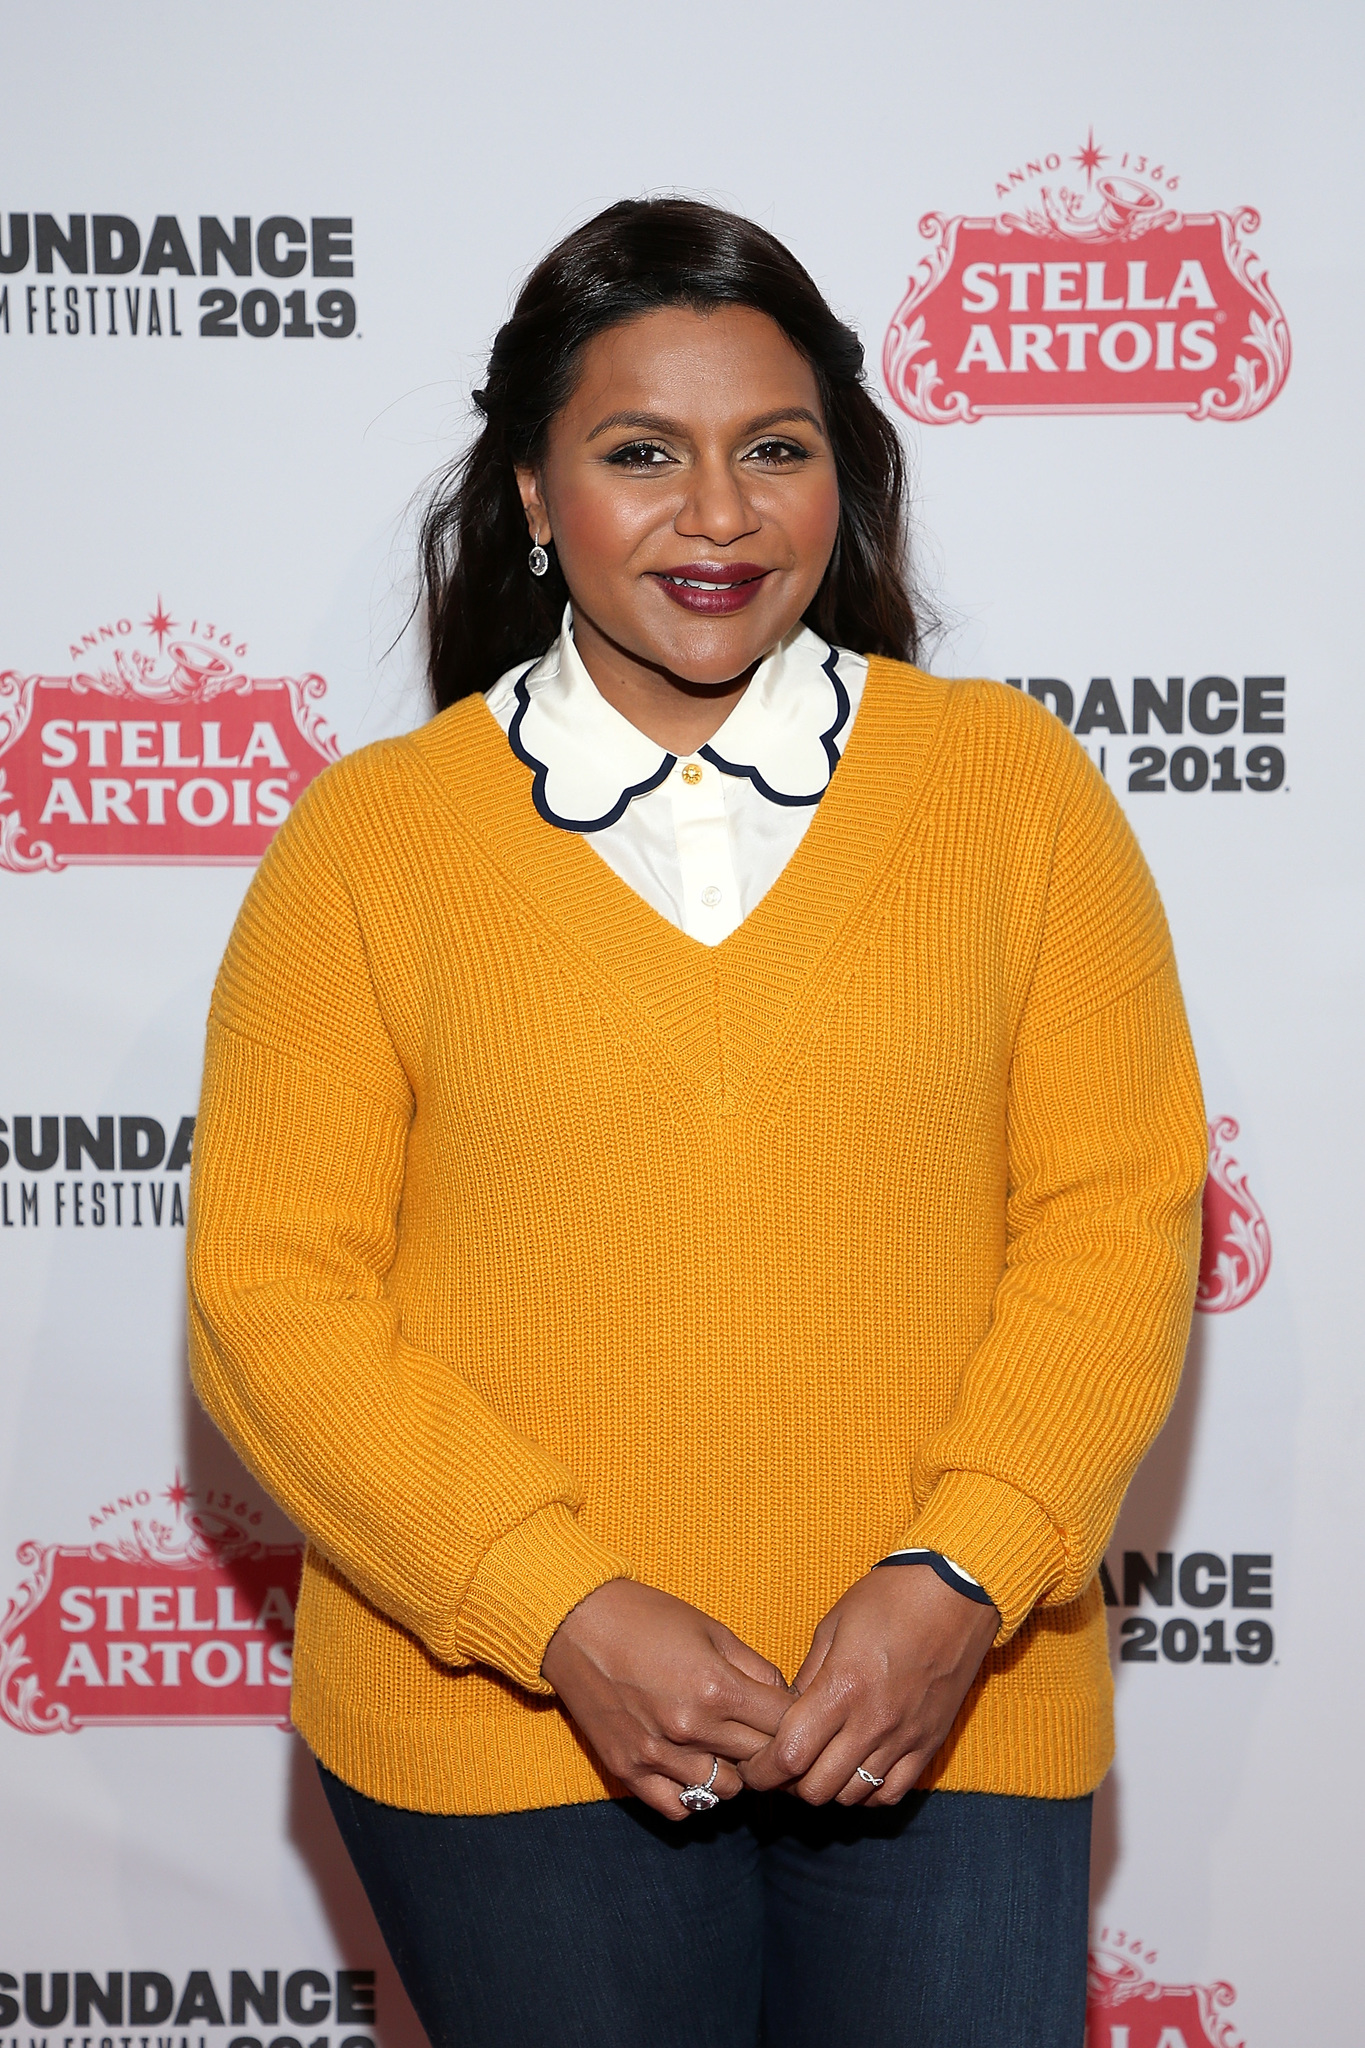 Mindy Kaling at an event for Park City (2015)